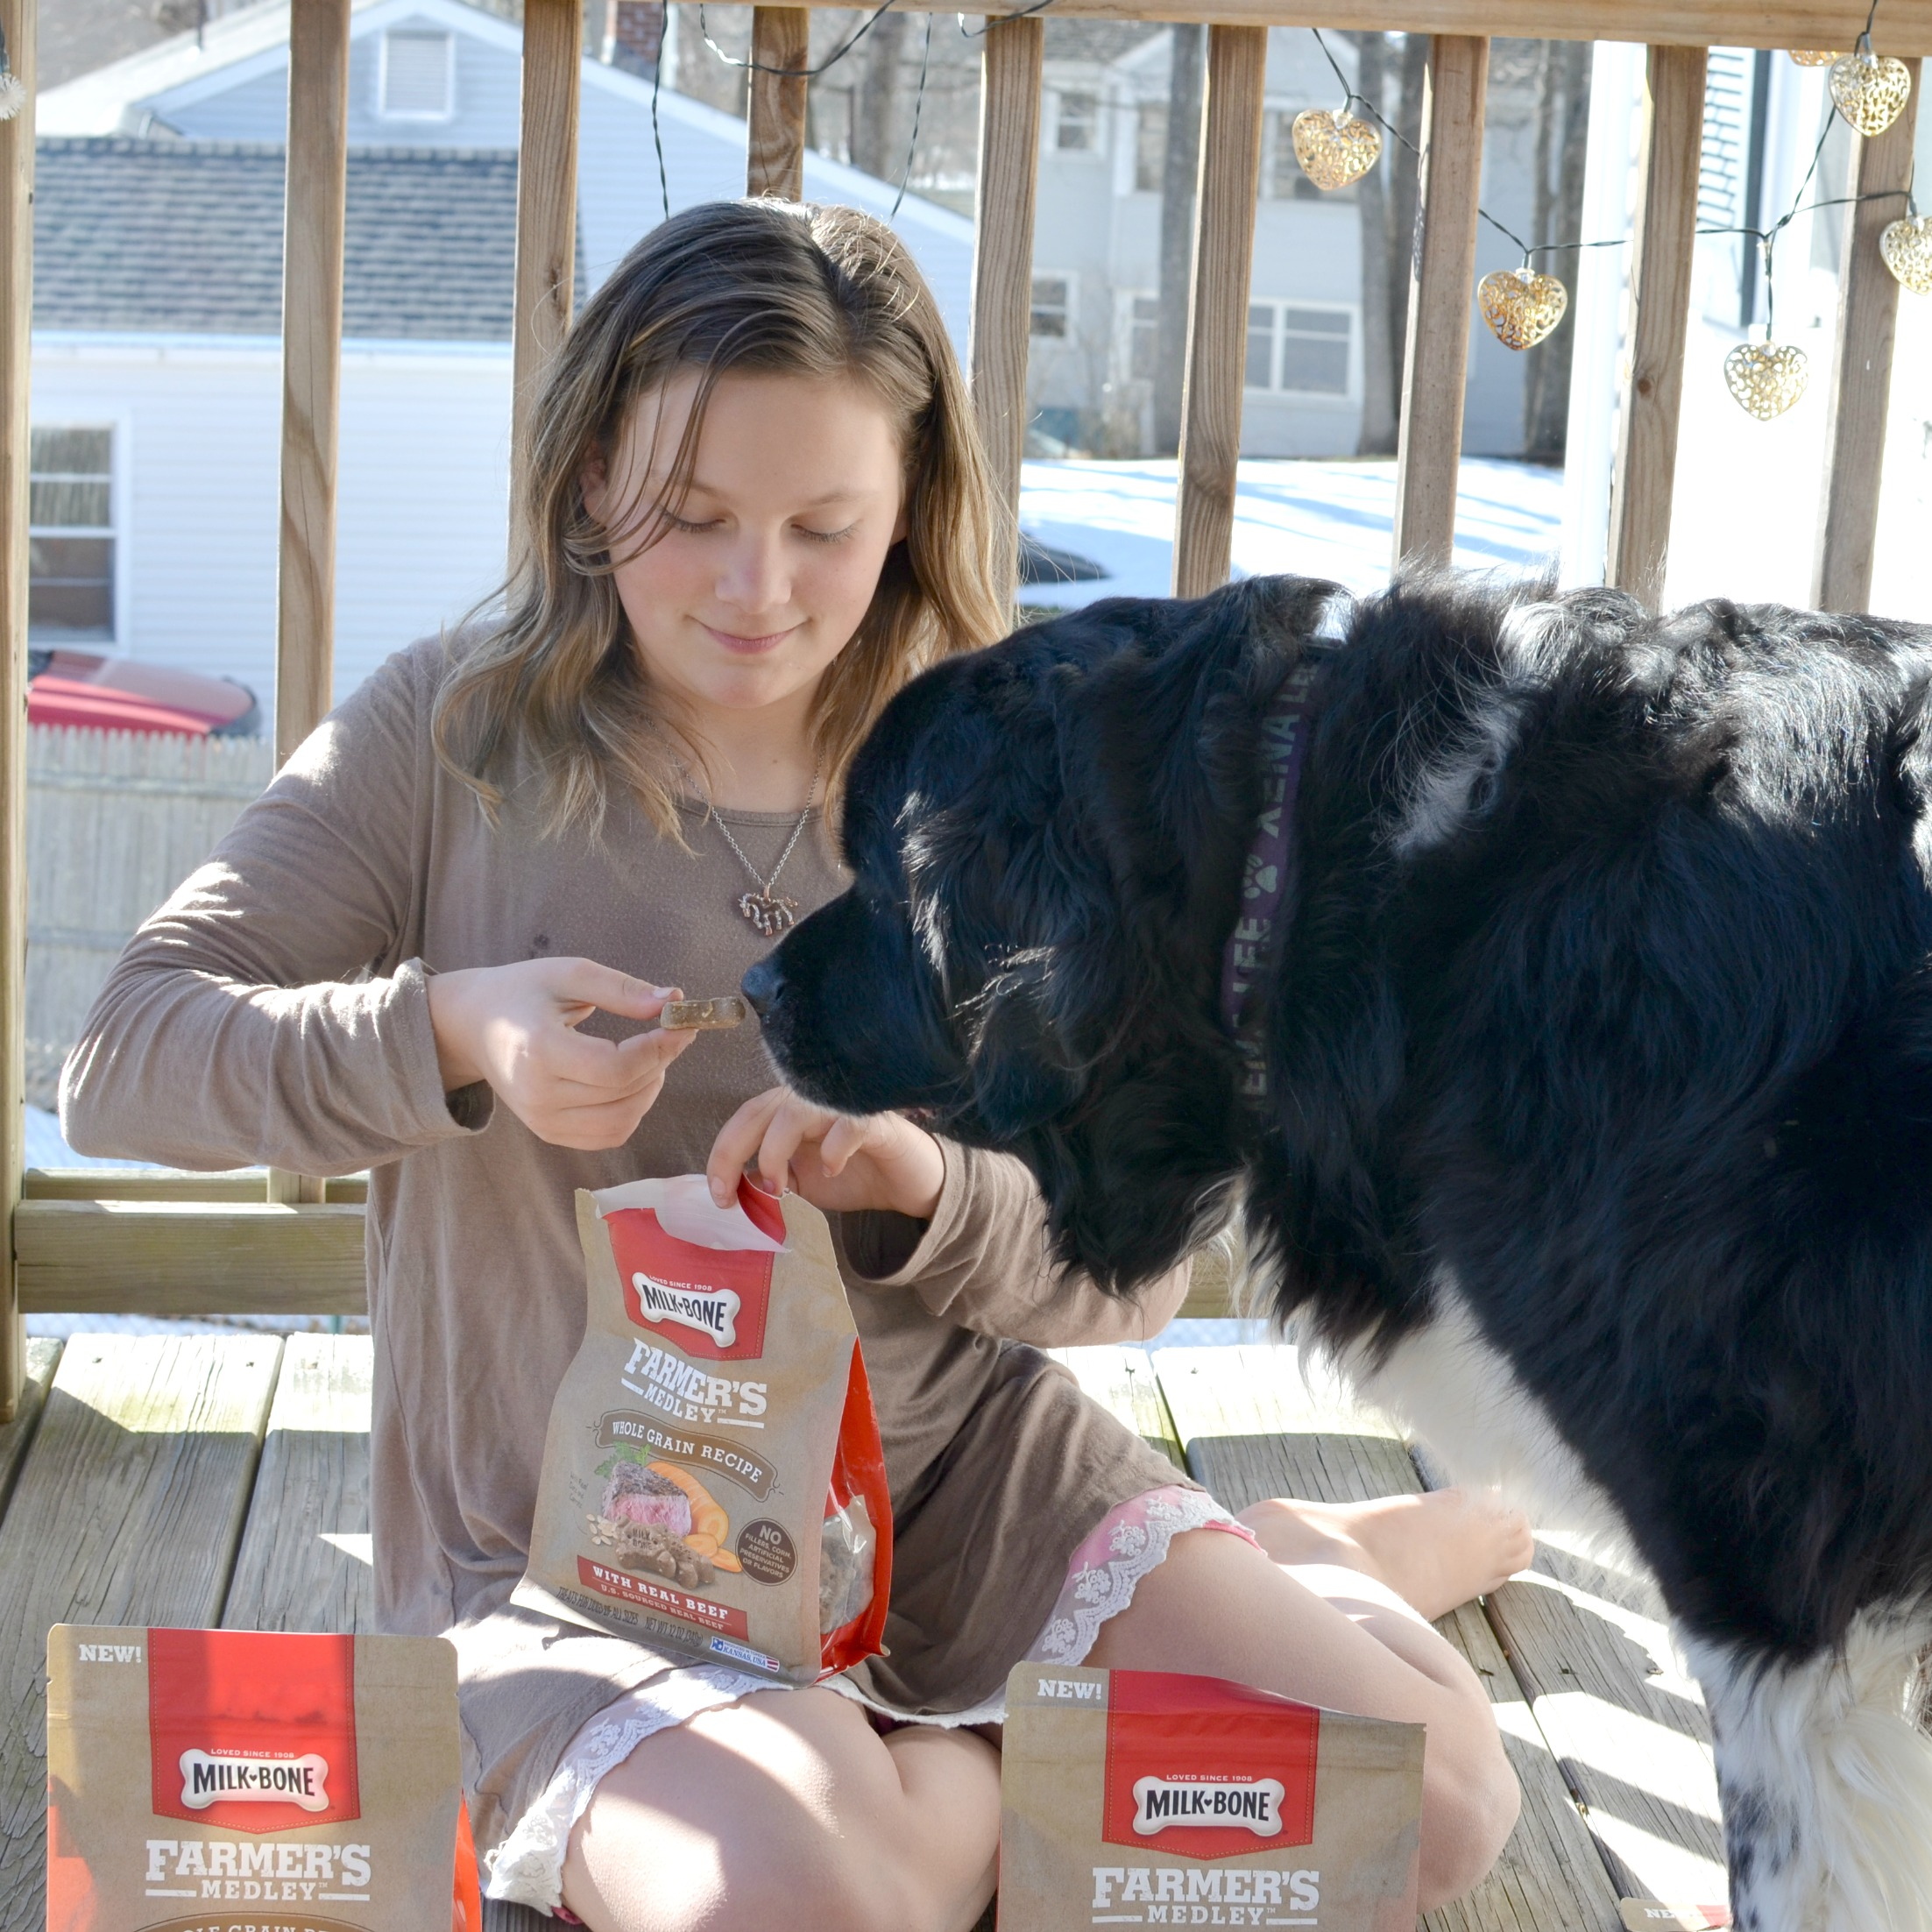 Milk-Bone Farmer's Medley For Better Snacking @milkbone #nationaldogbiscuitday #milkbone #ad